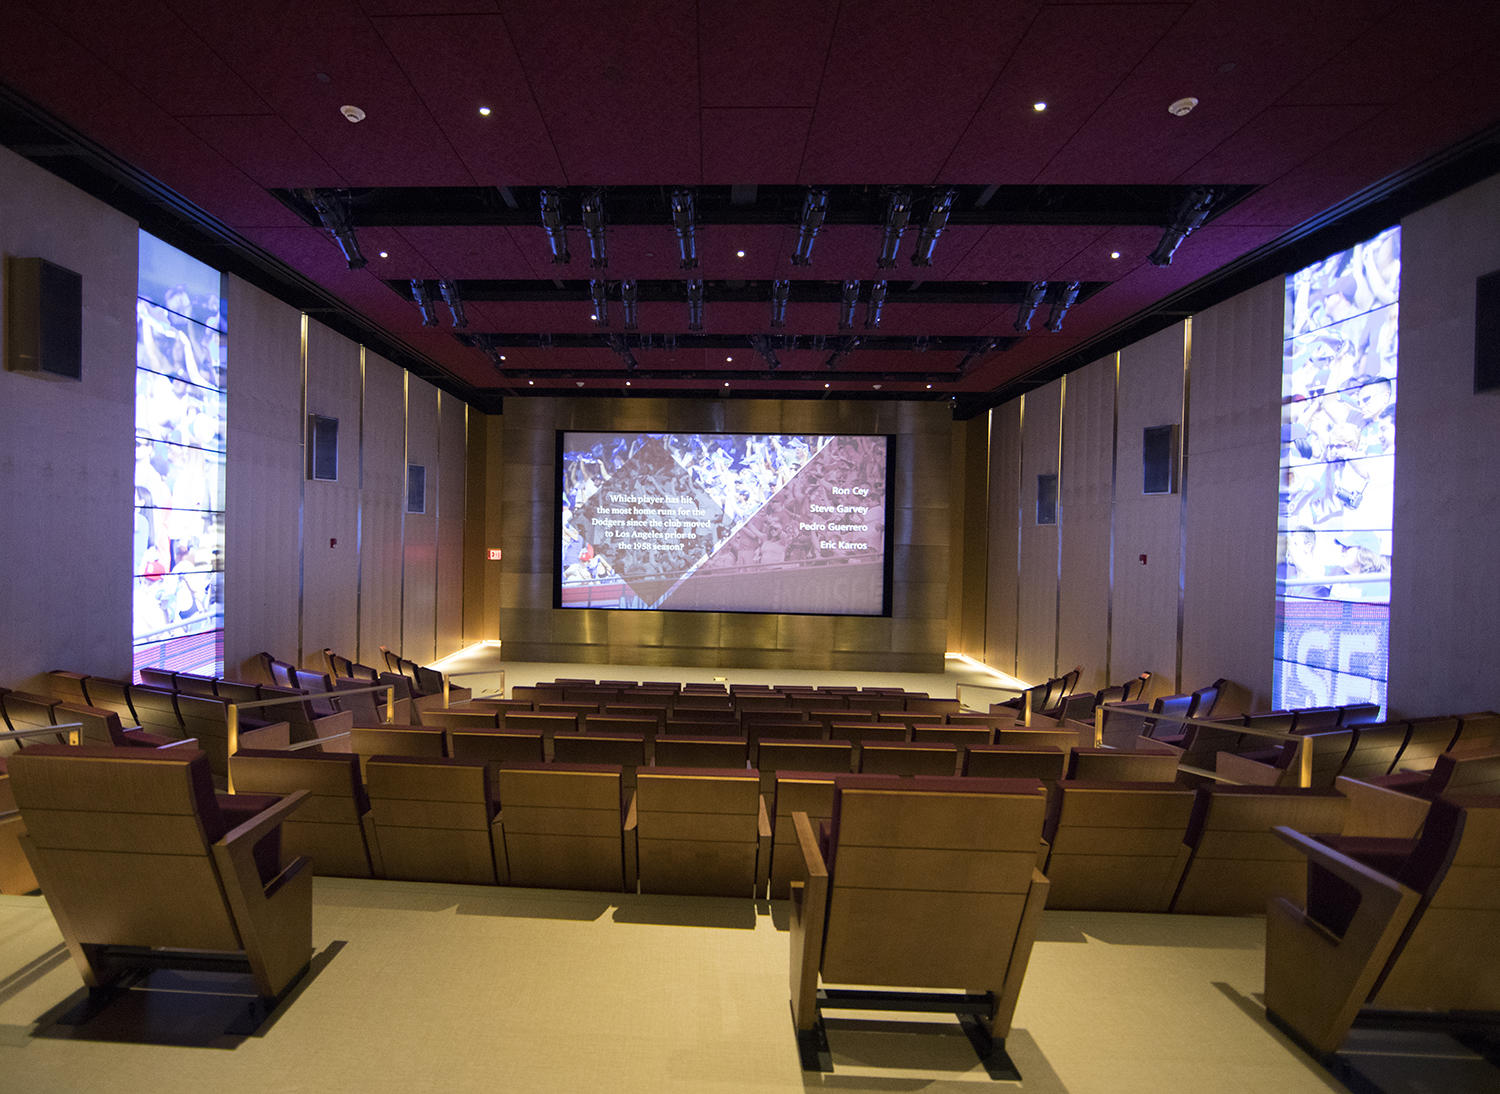 After a complete renovation, the 189-seat Grandstand Theater reopened in May of 2018. (Milo Stewart Jr./National Baseball Hall of Fame and Museum)